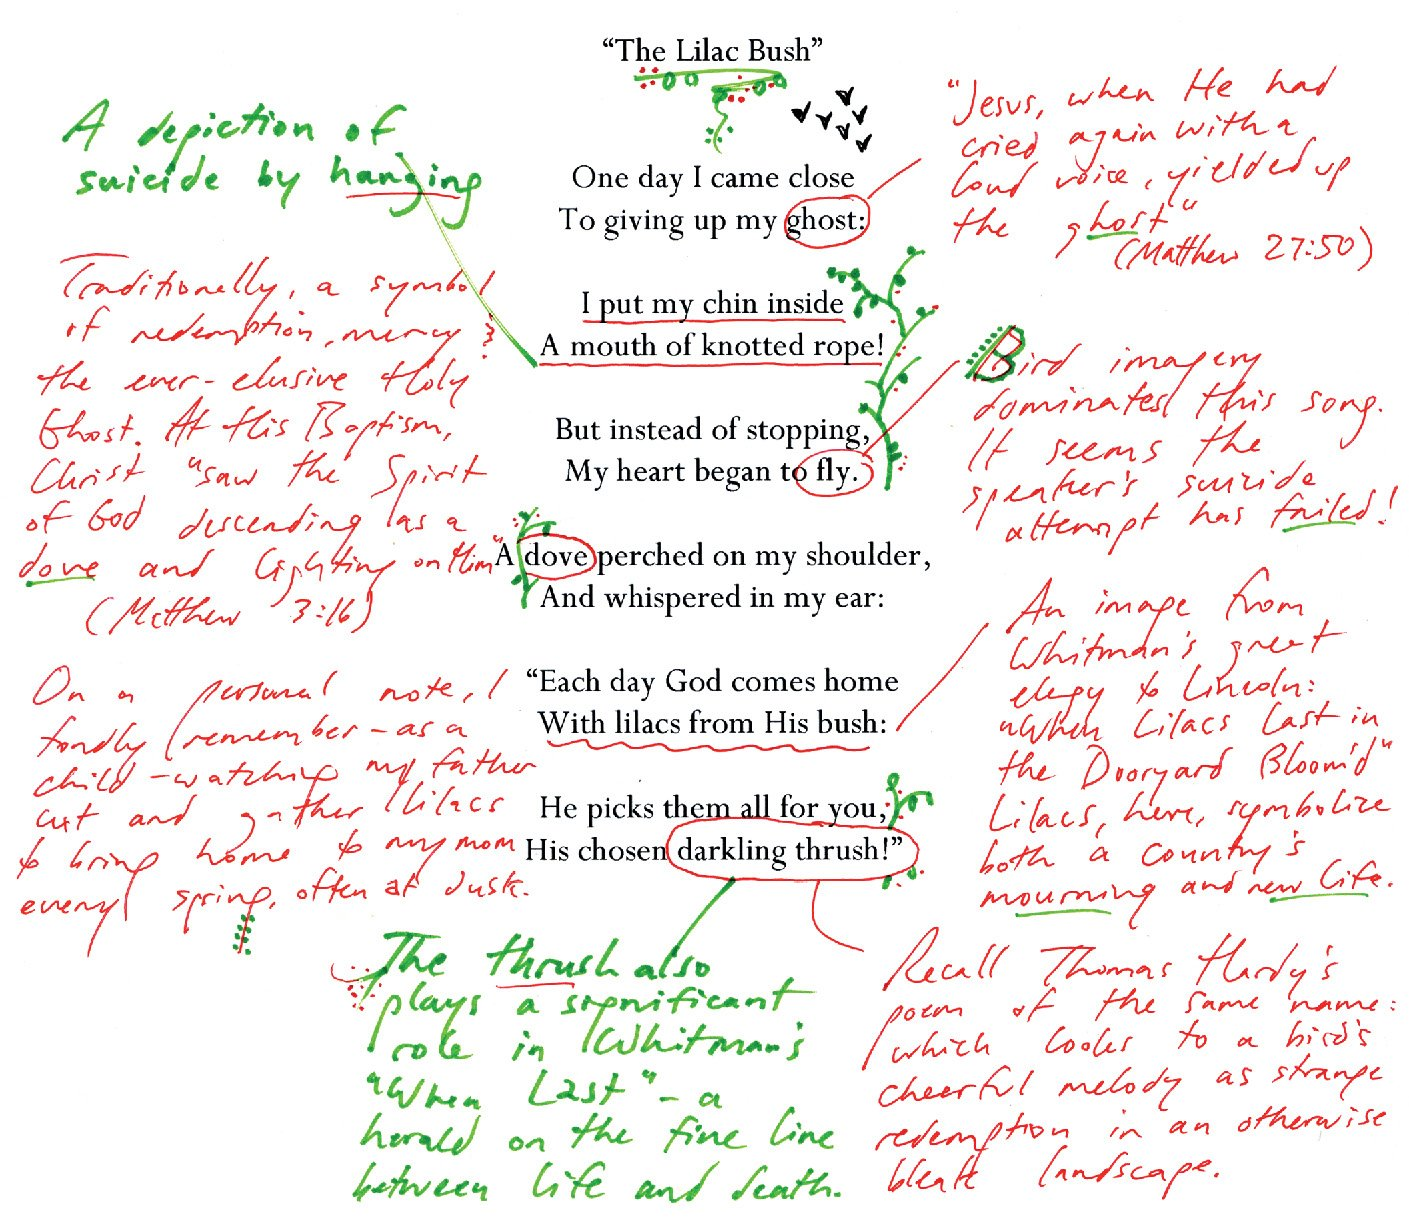 Text with scribbled margin notes in different ink colors